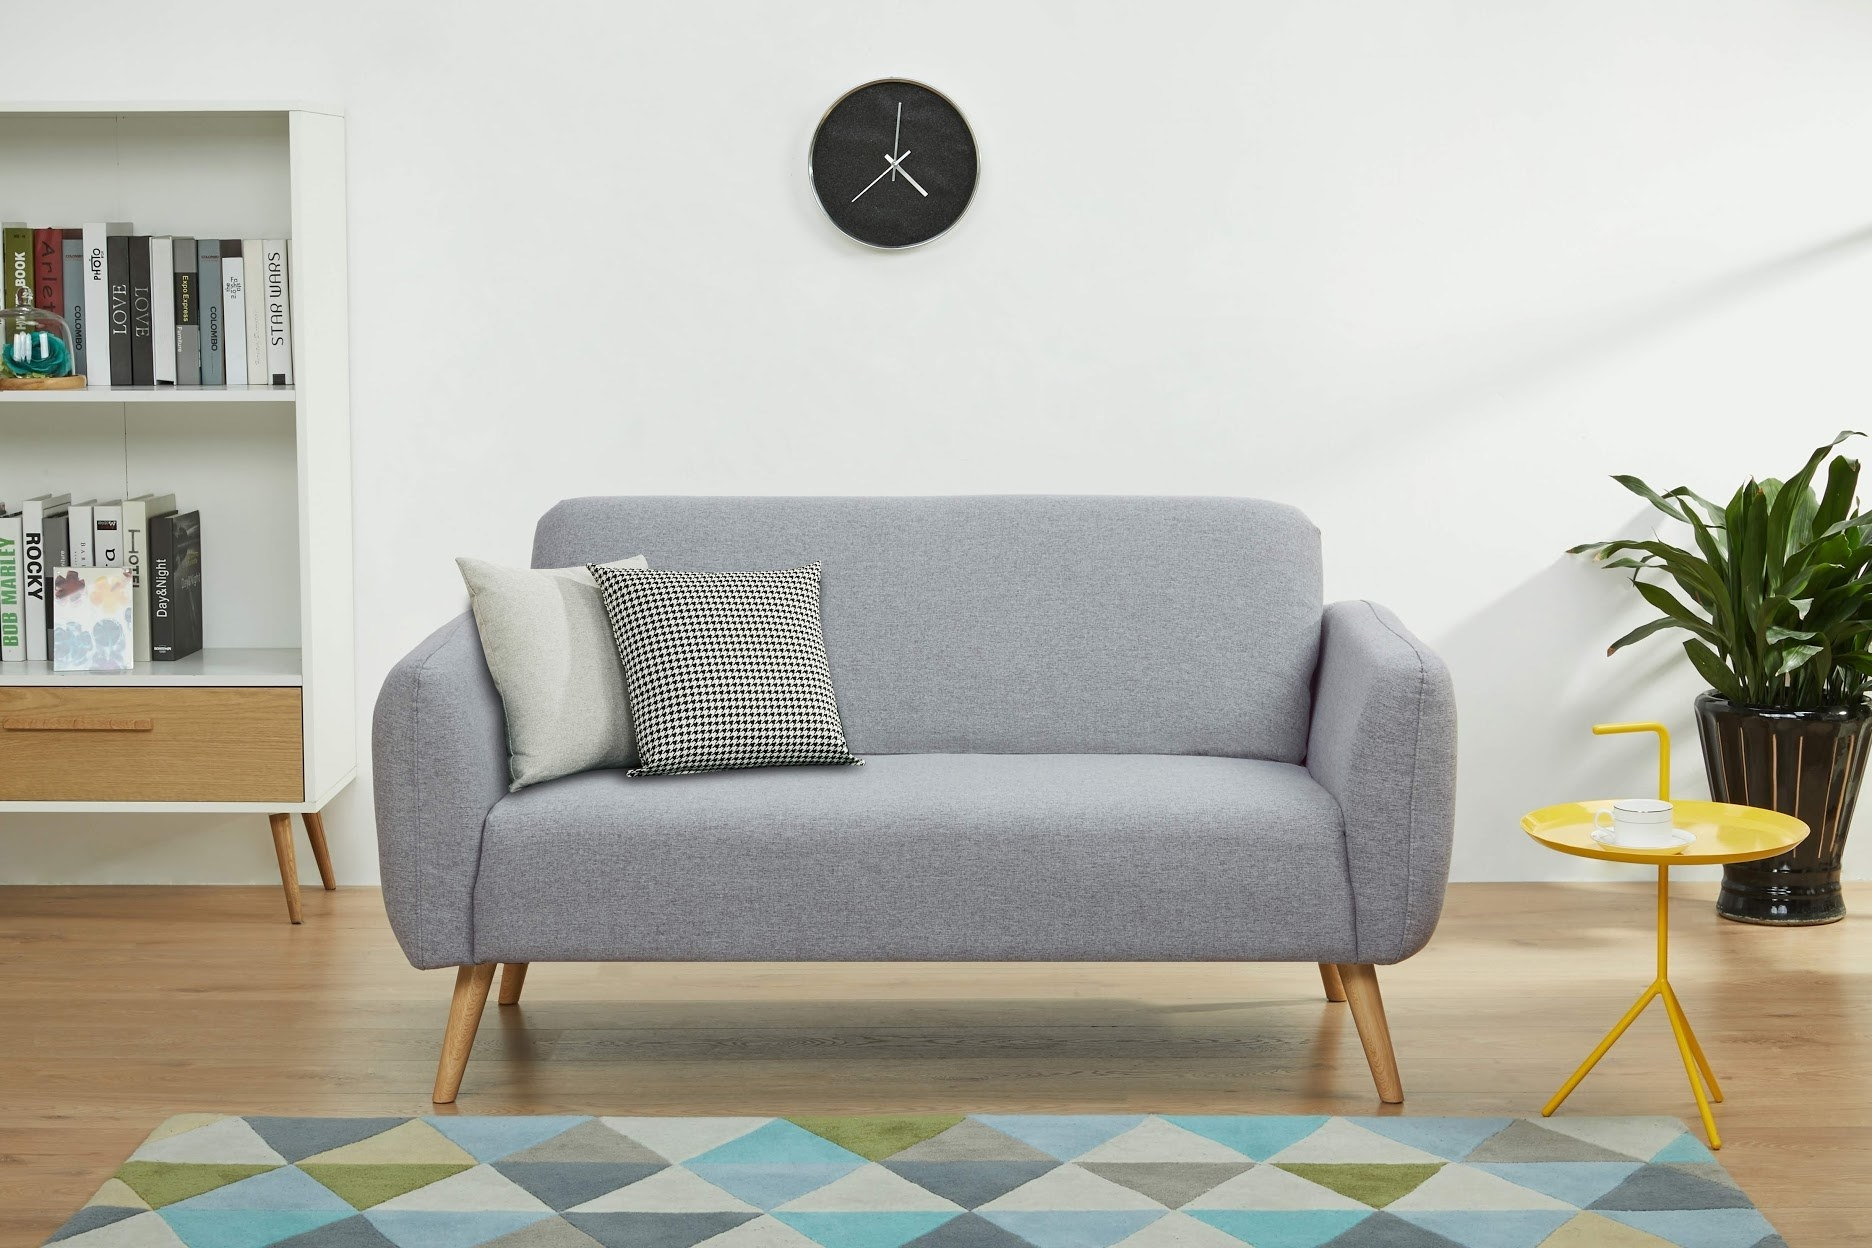 The loveseat in the color Light Grey